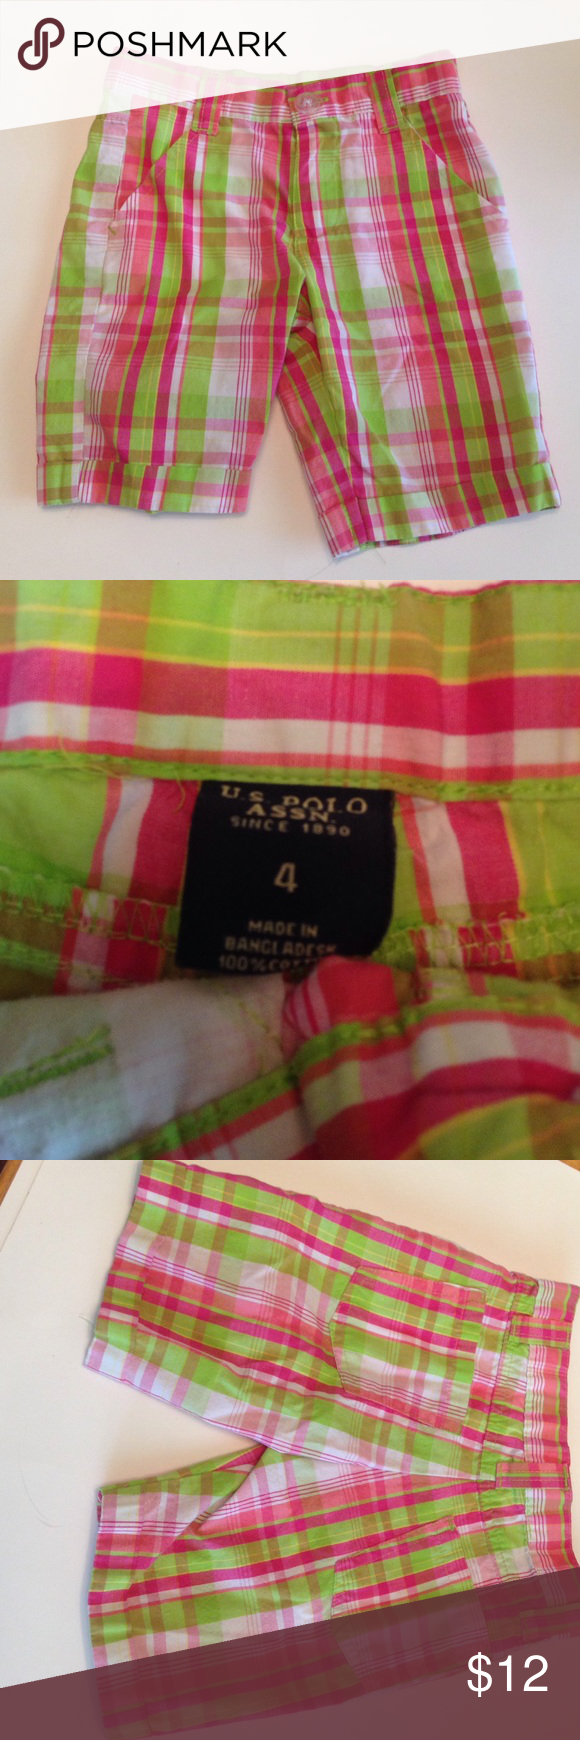 """GIRLS U.S. Polo Shorts Pink Plaid So cute! Pink and green plaid shorts from U.S. Polo Assn. Very gently worn. No stains or holes. Girls size 4. 100% cotton made in Bangladesh. LAYING FLAT MEASUREMENTS: waist 10.5"""" (not adjustable) length 12"""" U.S. Polo Assn. Bottoms Shorts"""